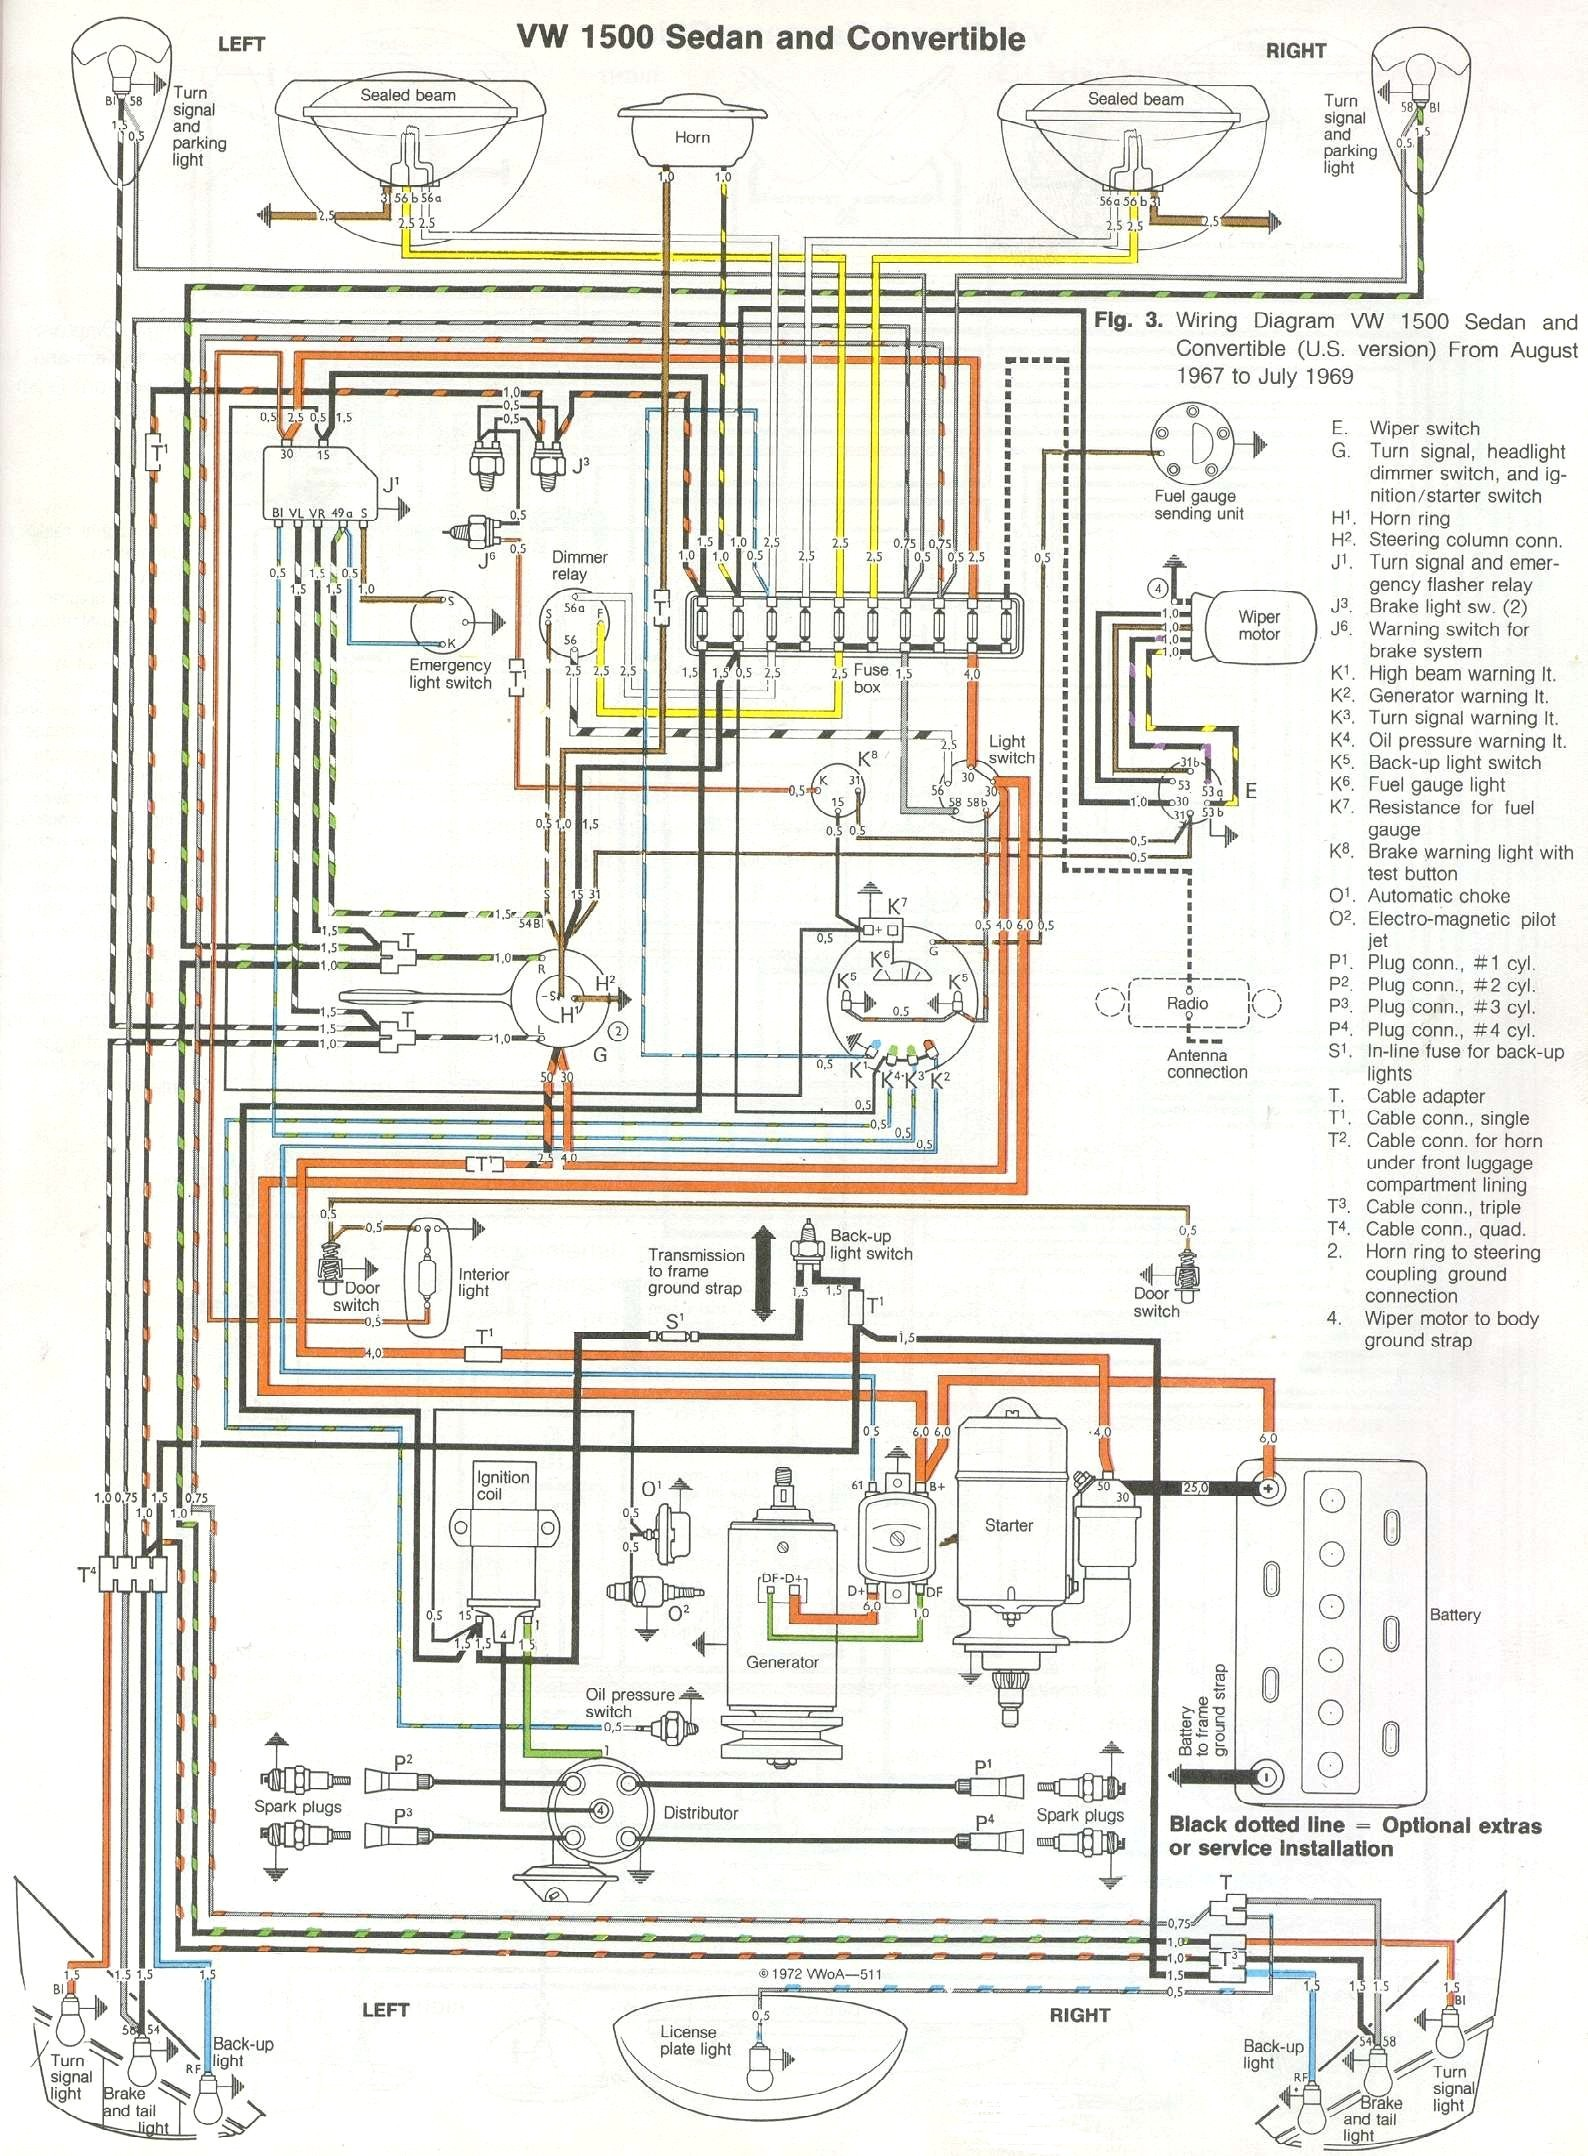 Vw beetle wiring diagram 1973 data wiring diagrams 1973 super beetle wiring schematics wiring diagram portal u2022 rh getcircuitdiagram today 1973 vw beetle voltage asfbconference2016 Choice Image